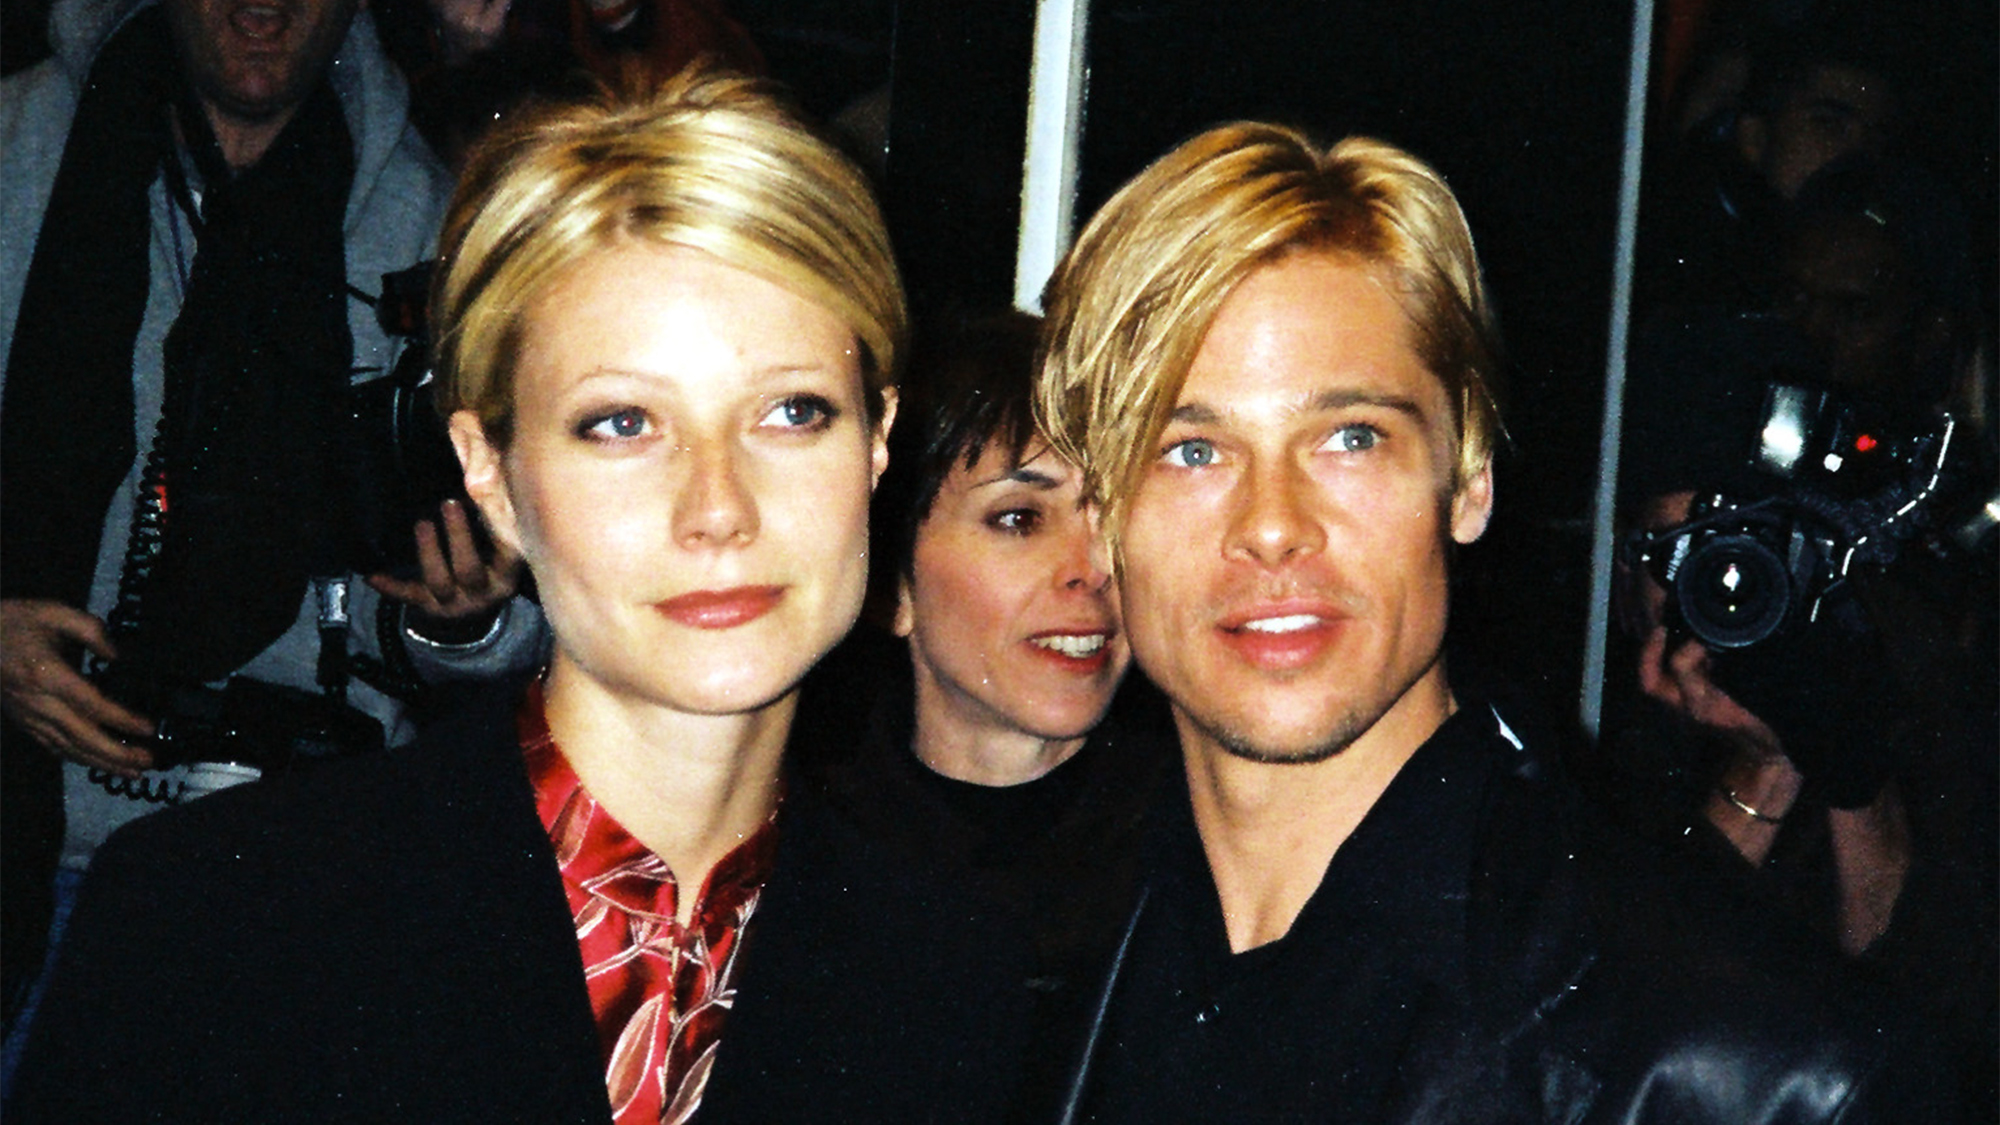 Gwyneth Paltrow Has Spoken About Getting Back With Brad Pitt